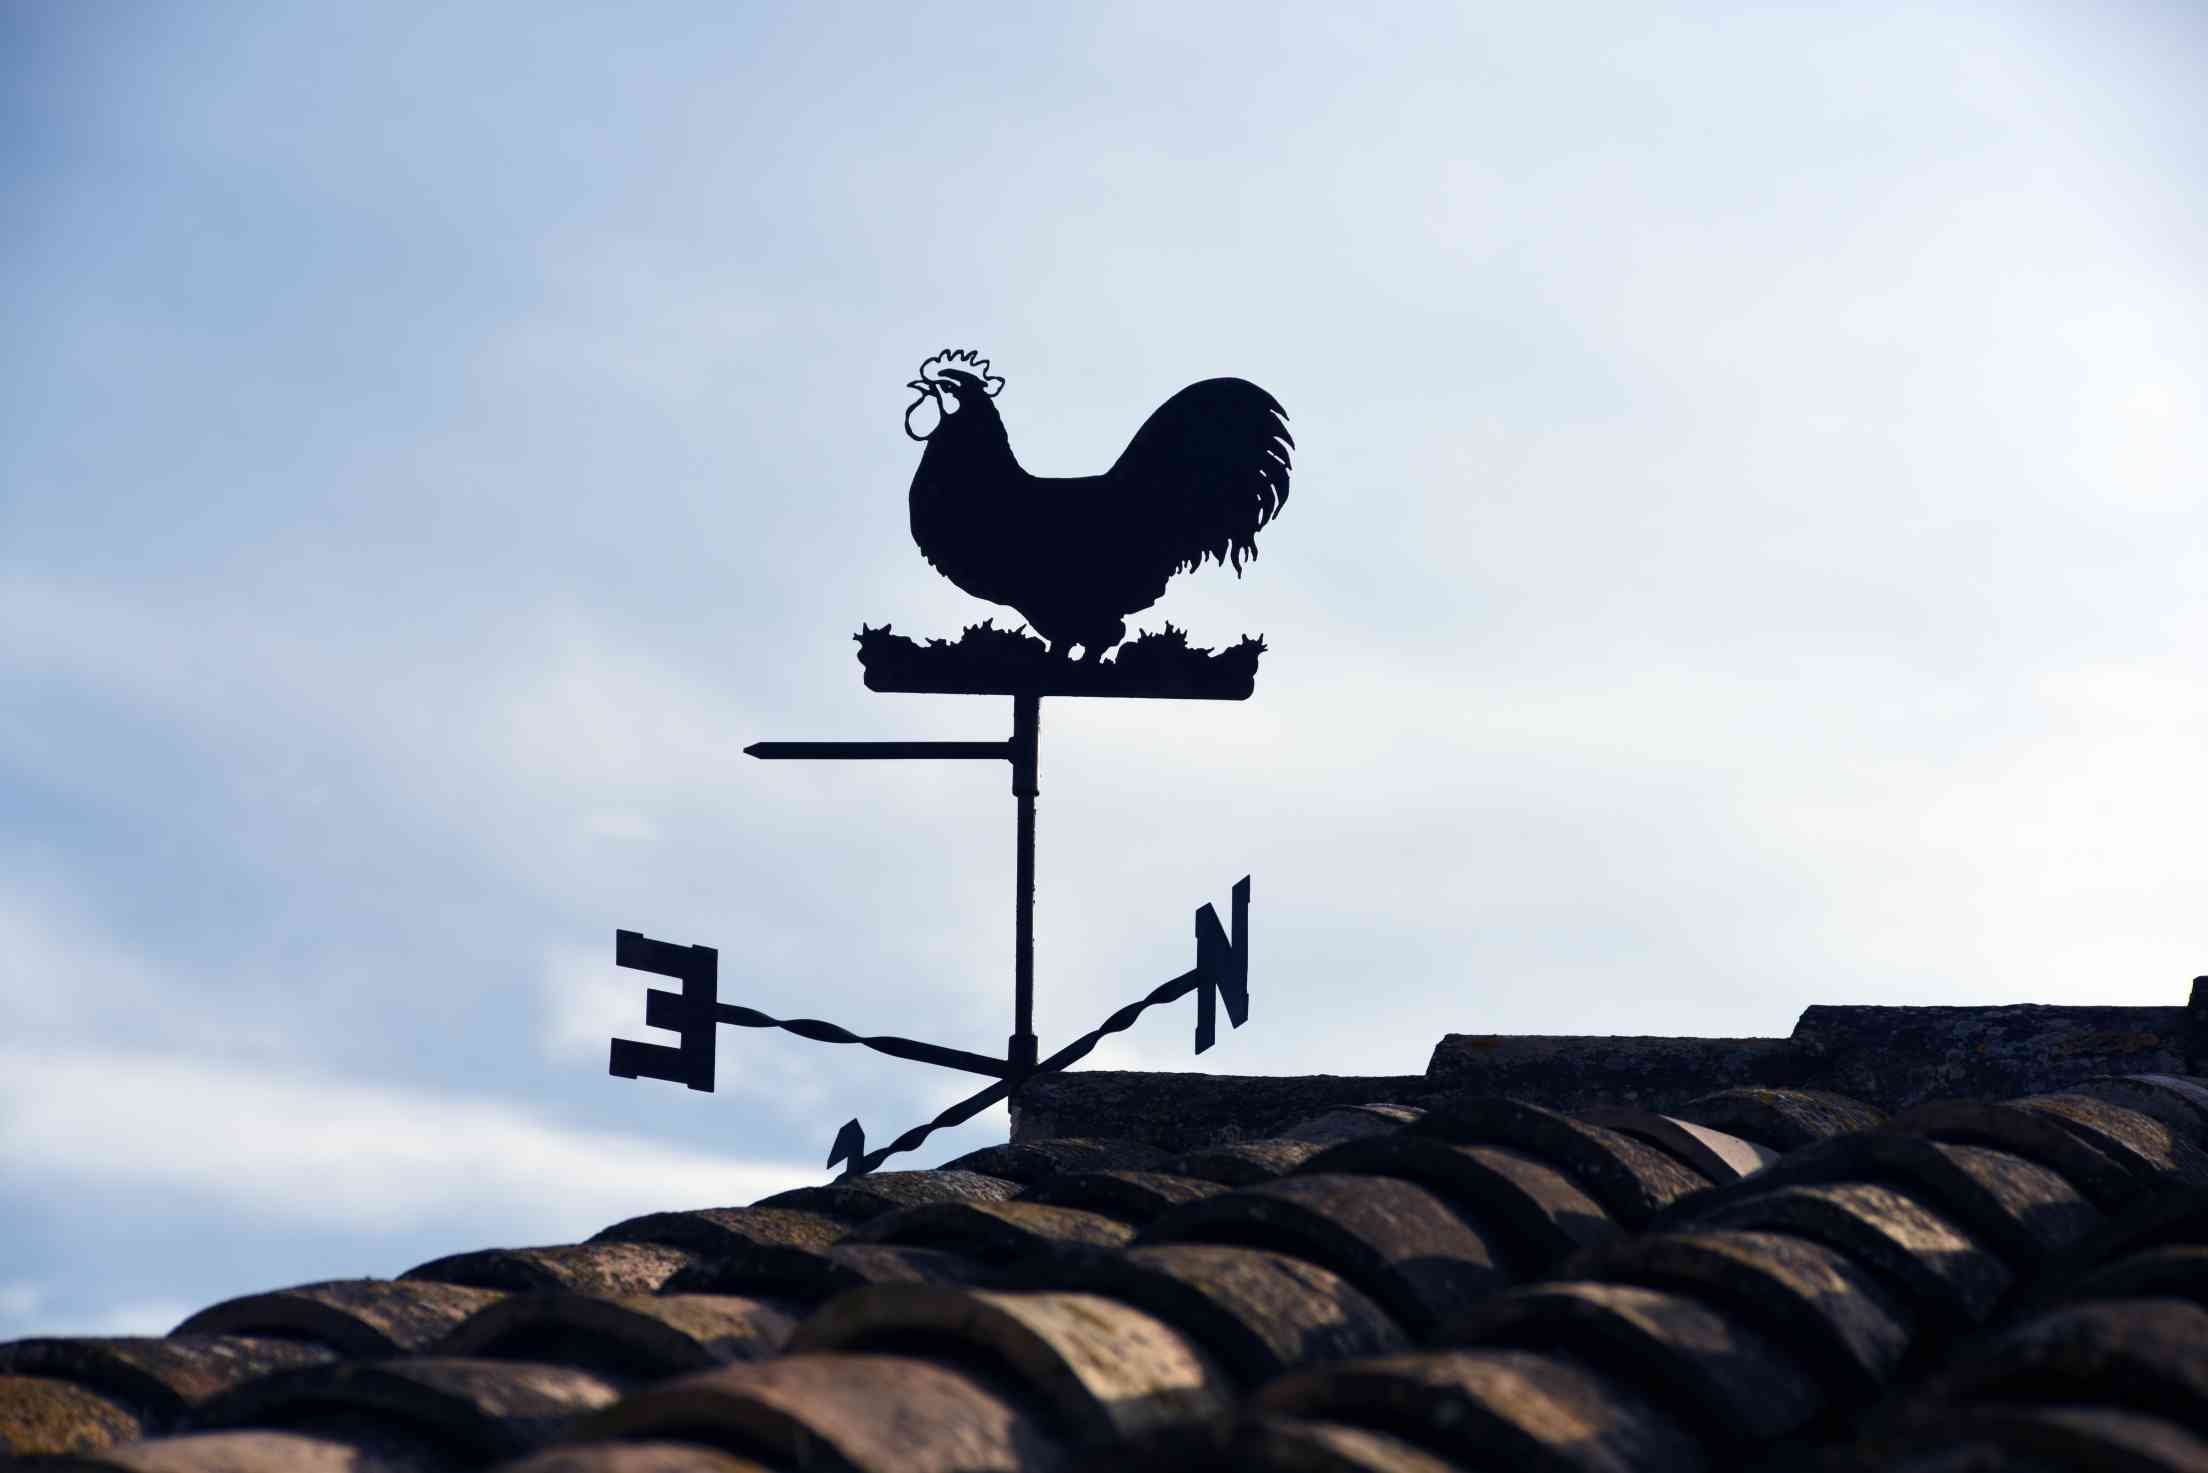 weather vane with rooster-forecast